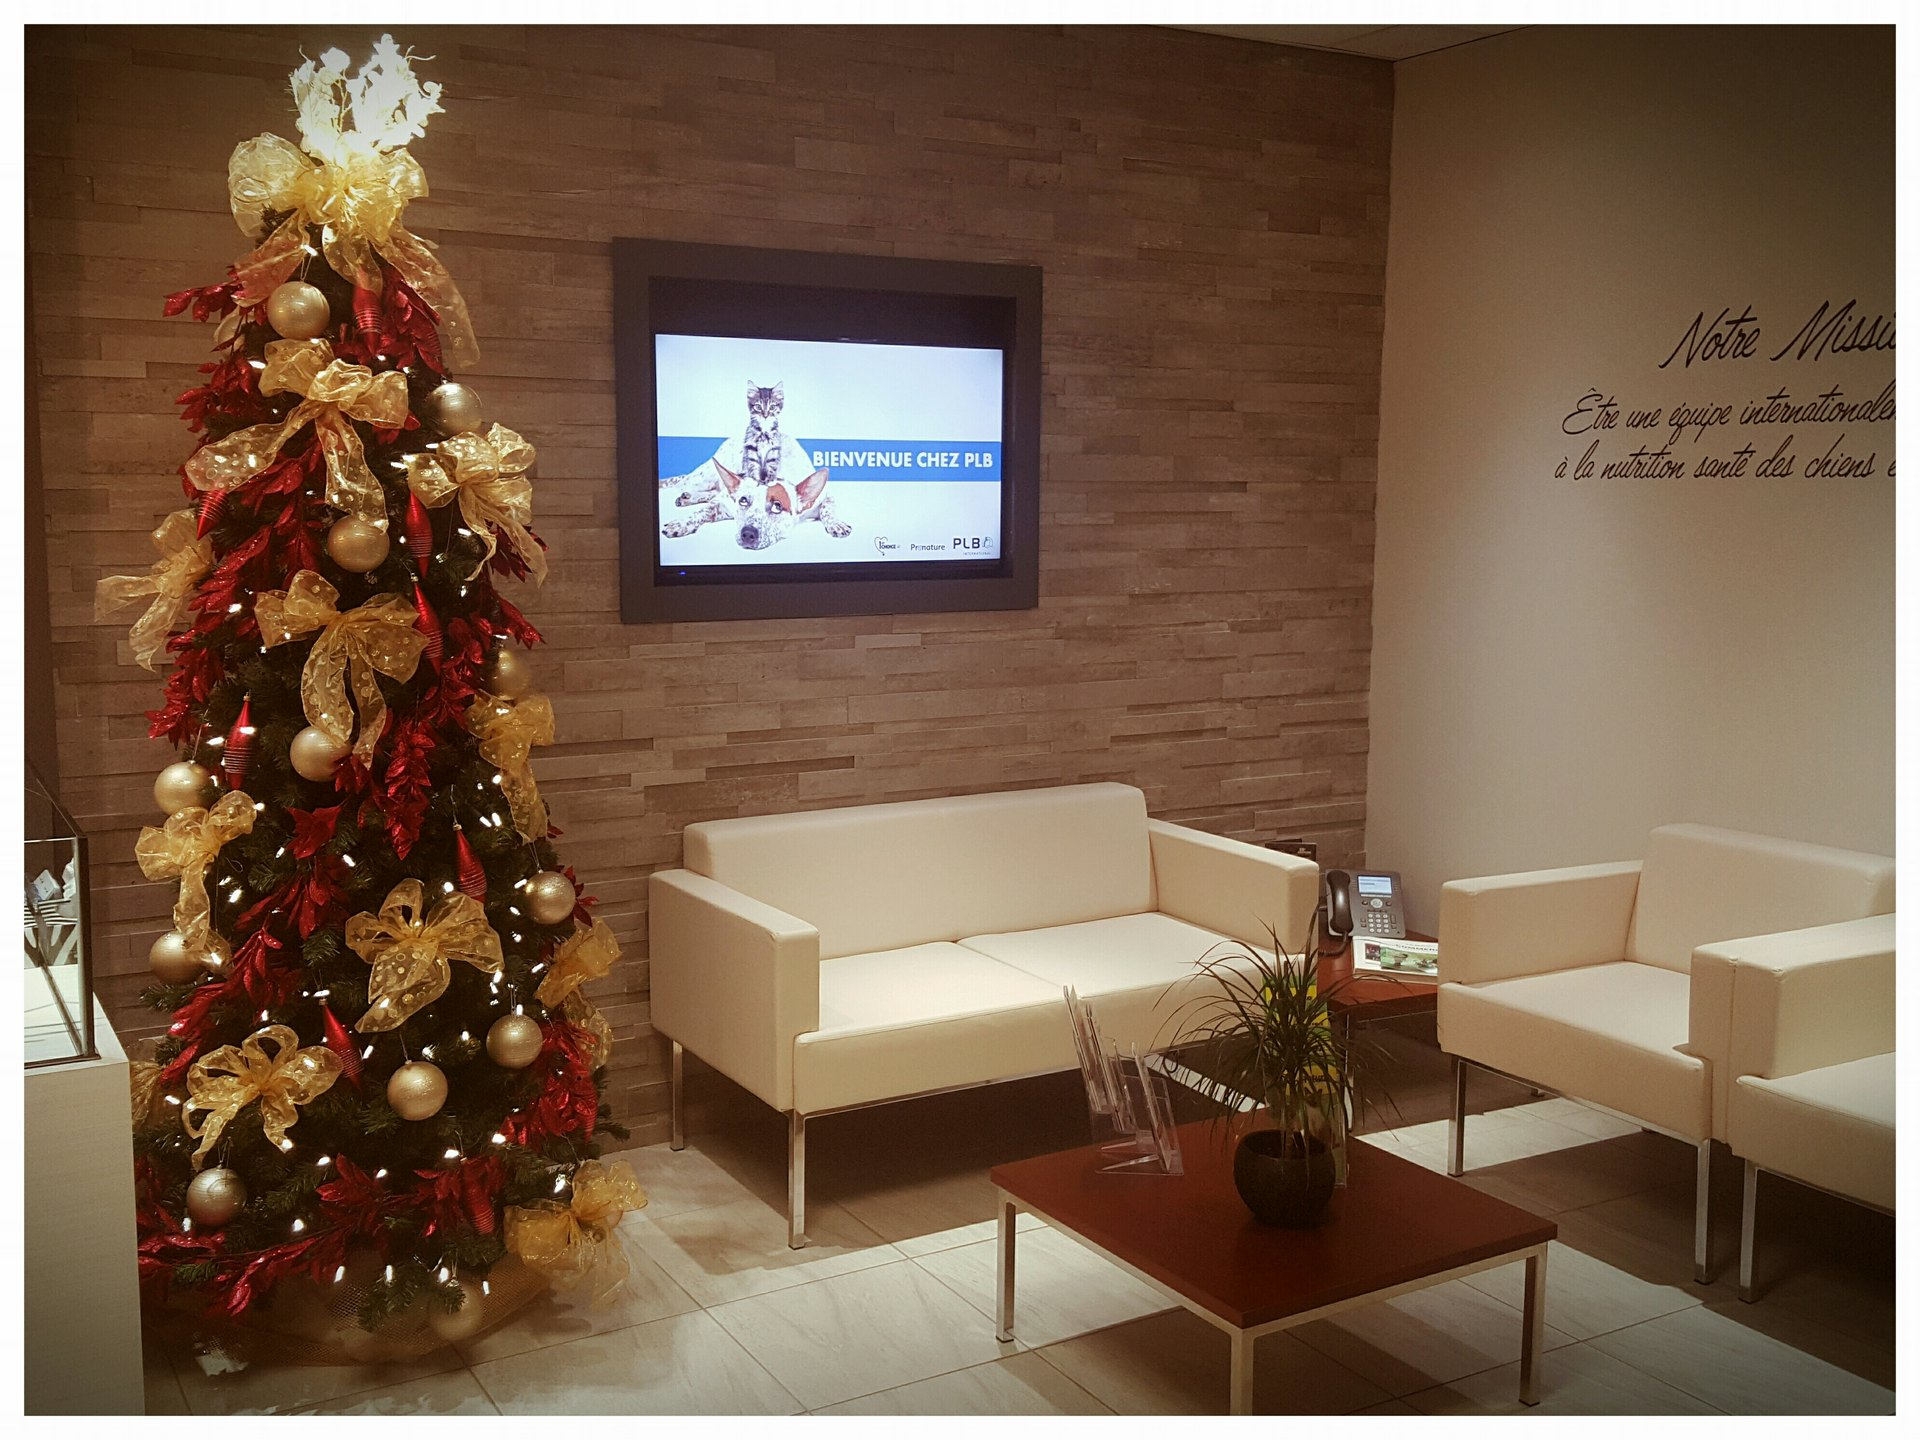 PLB International dives into the Holiday spirit!